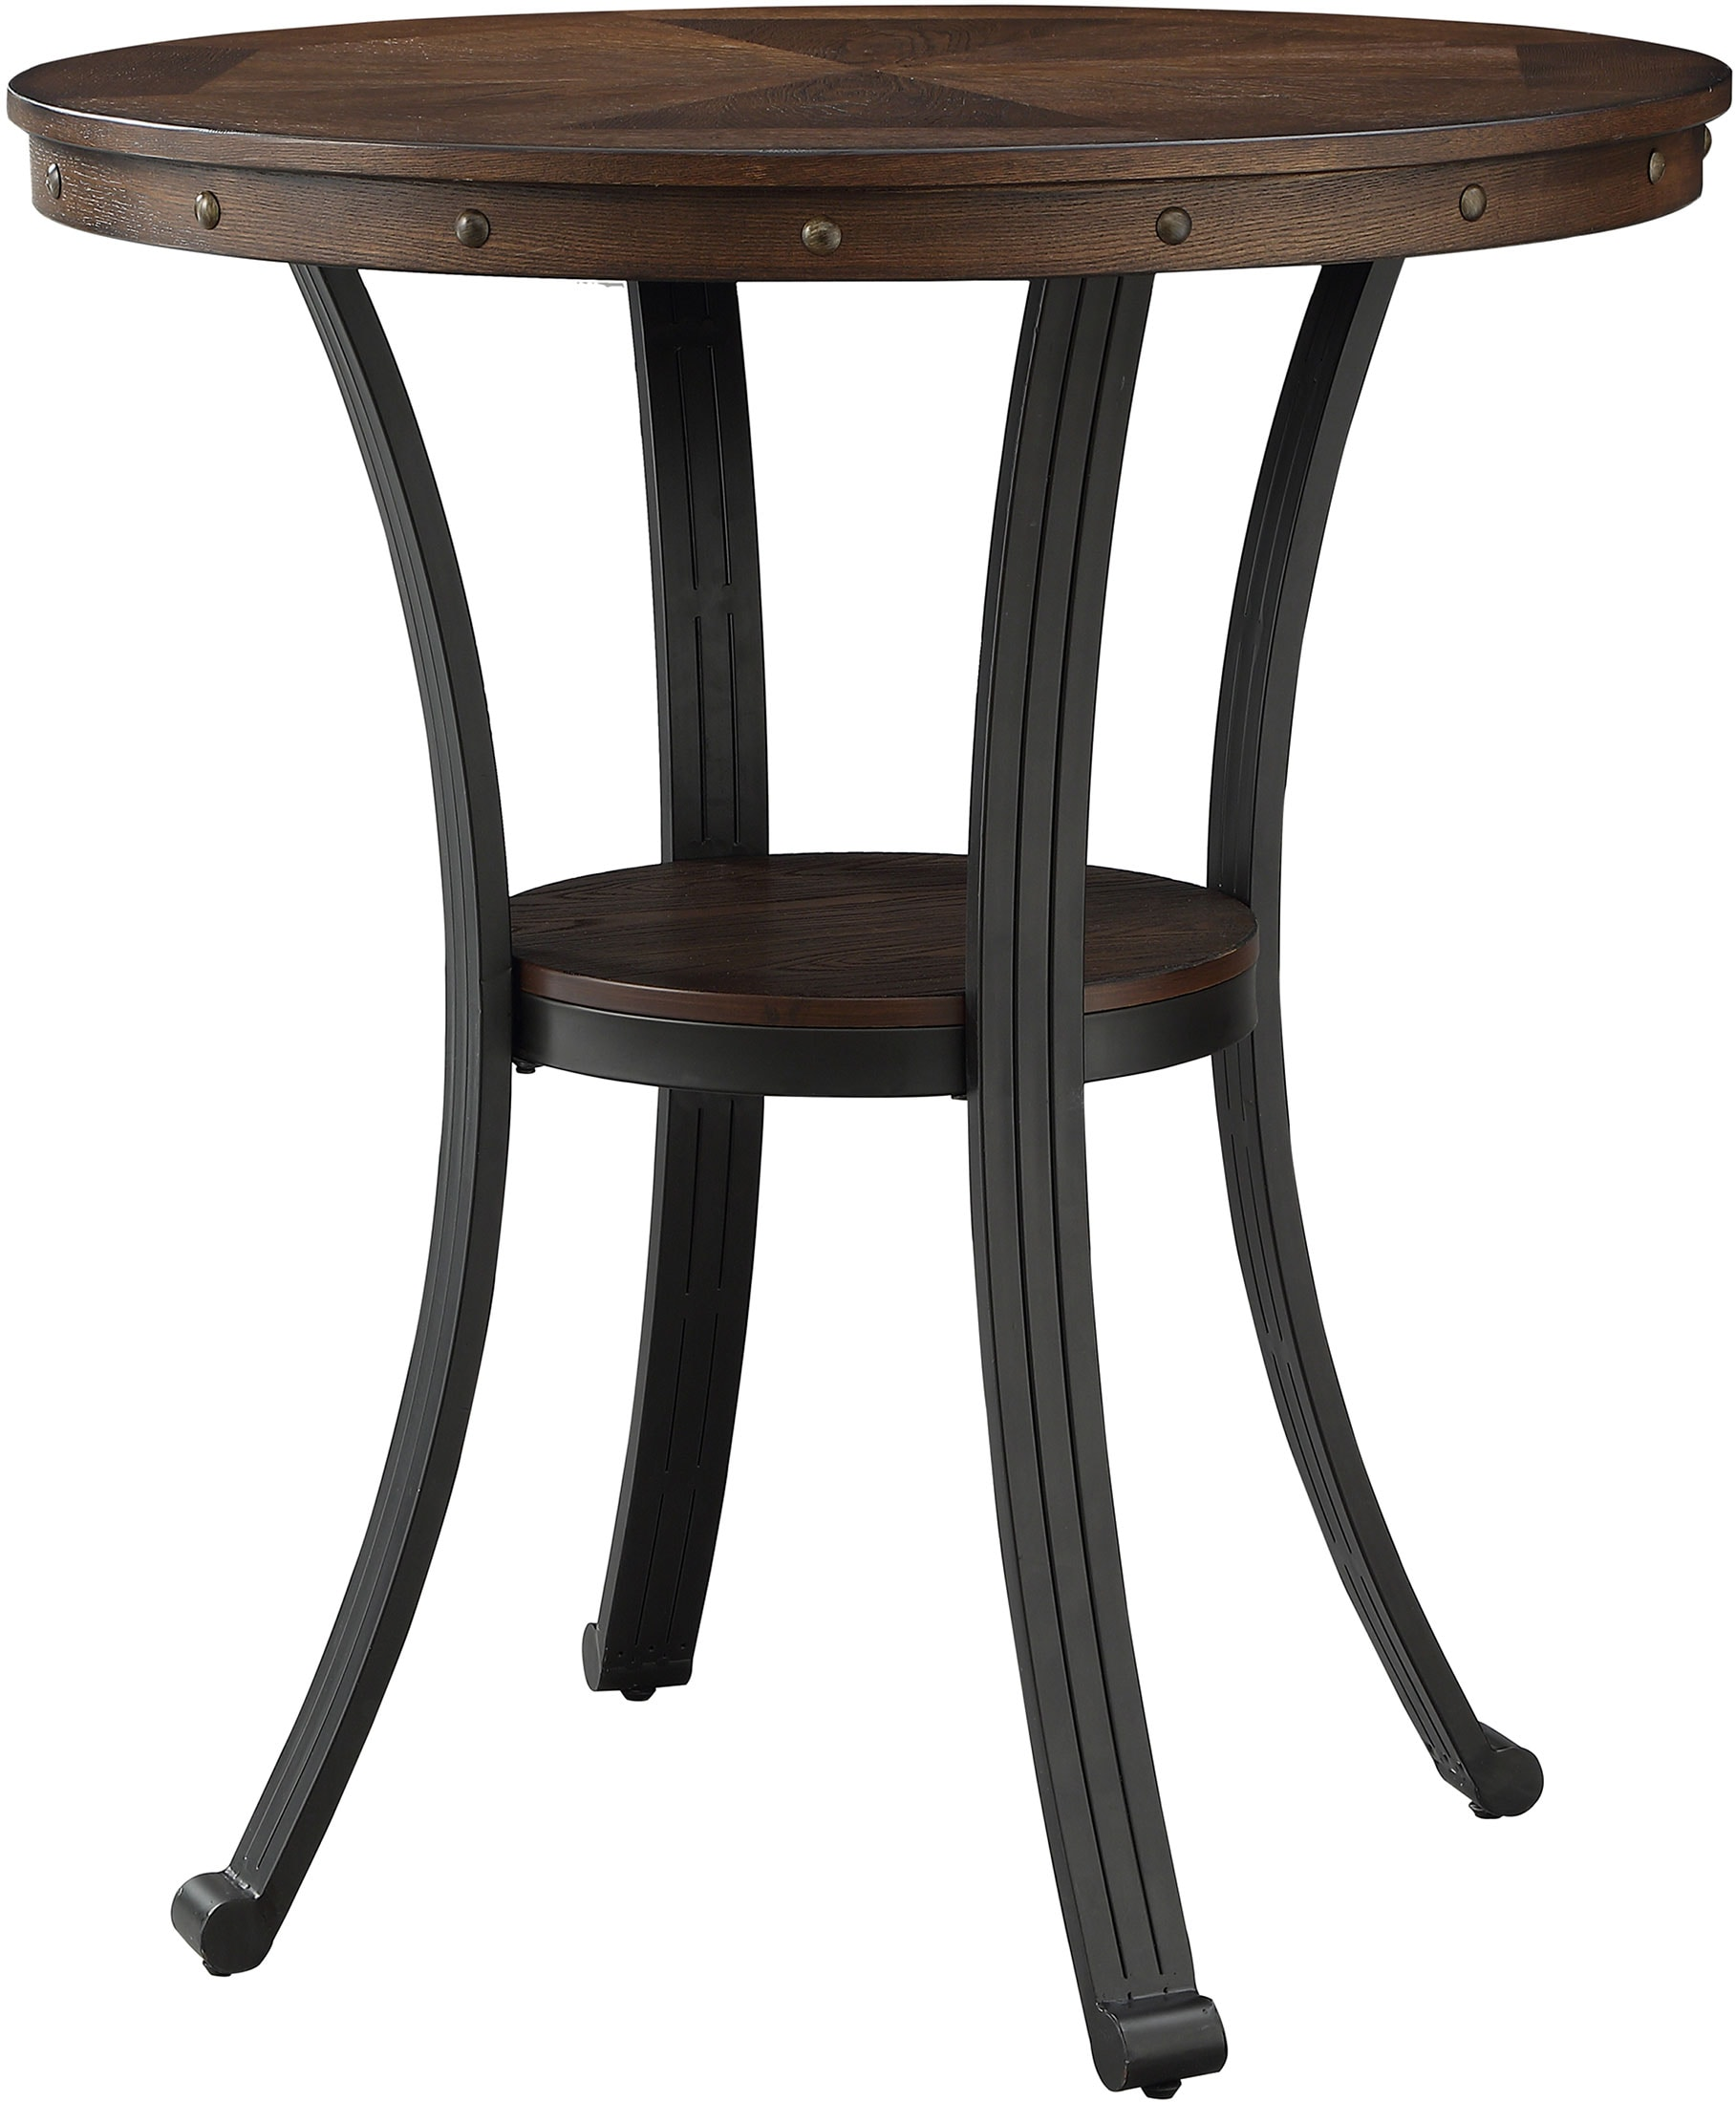 Dining Room Furniture - Jude Pub Table